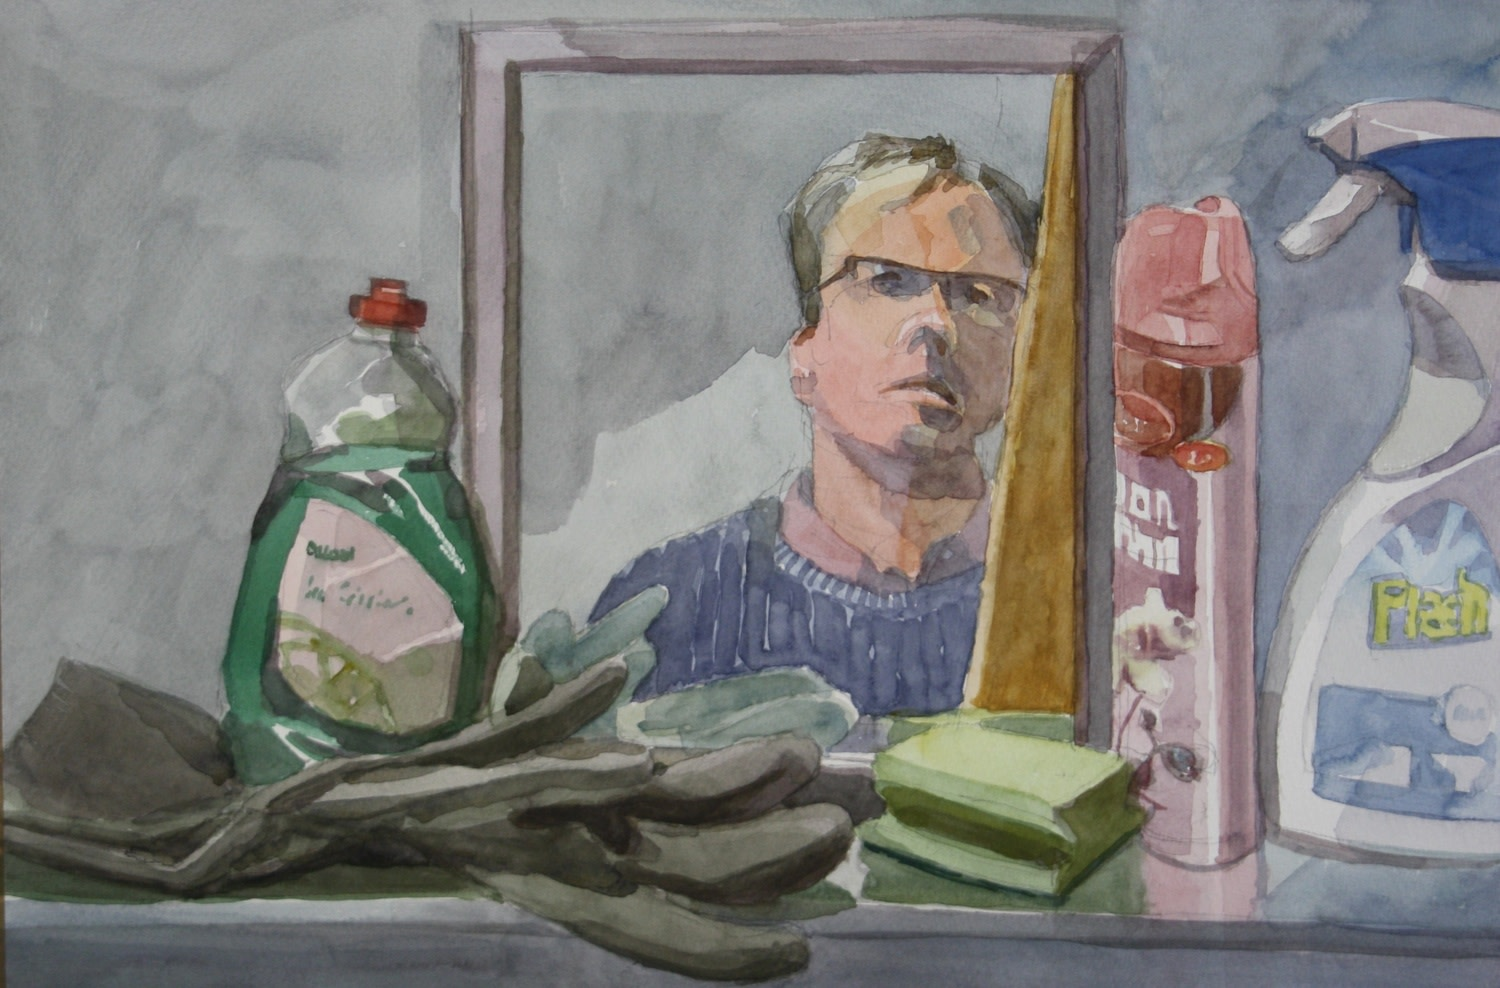 <span class=&#34;link fancybox-details-link&#34;><a href=&#34;/exhibitions/25/works/image_standalone495/&#34;>View Detail Page</a></span><p>Sebastian Aplin</p><p>Self Portrait with Cleaning Products</p><p>&nbsp;</p><p>Winner of the Jackson's Young Artist Prize</p>